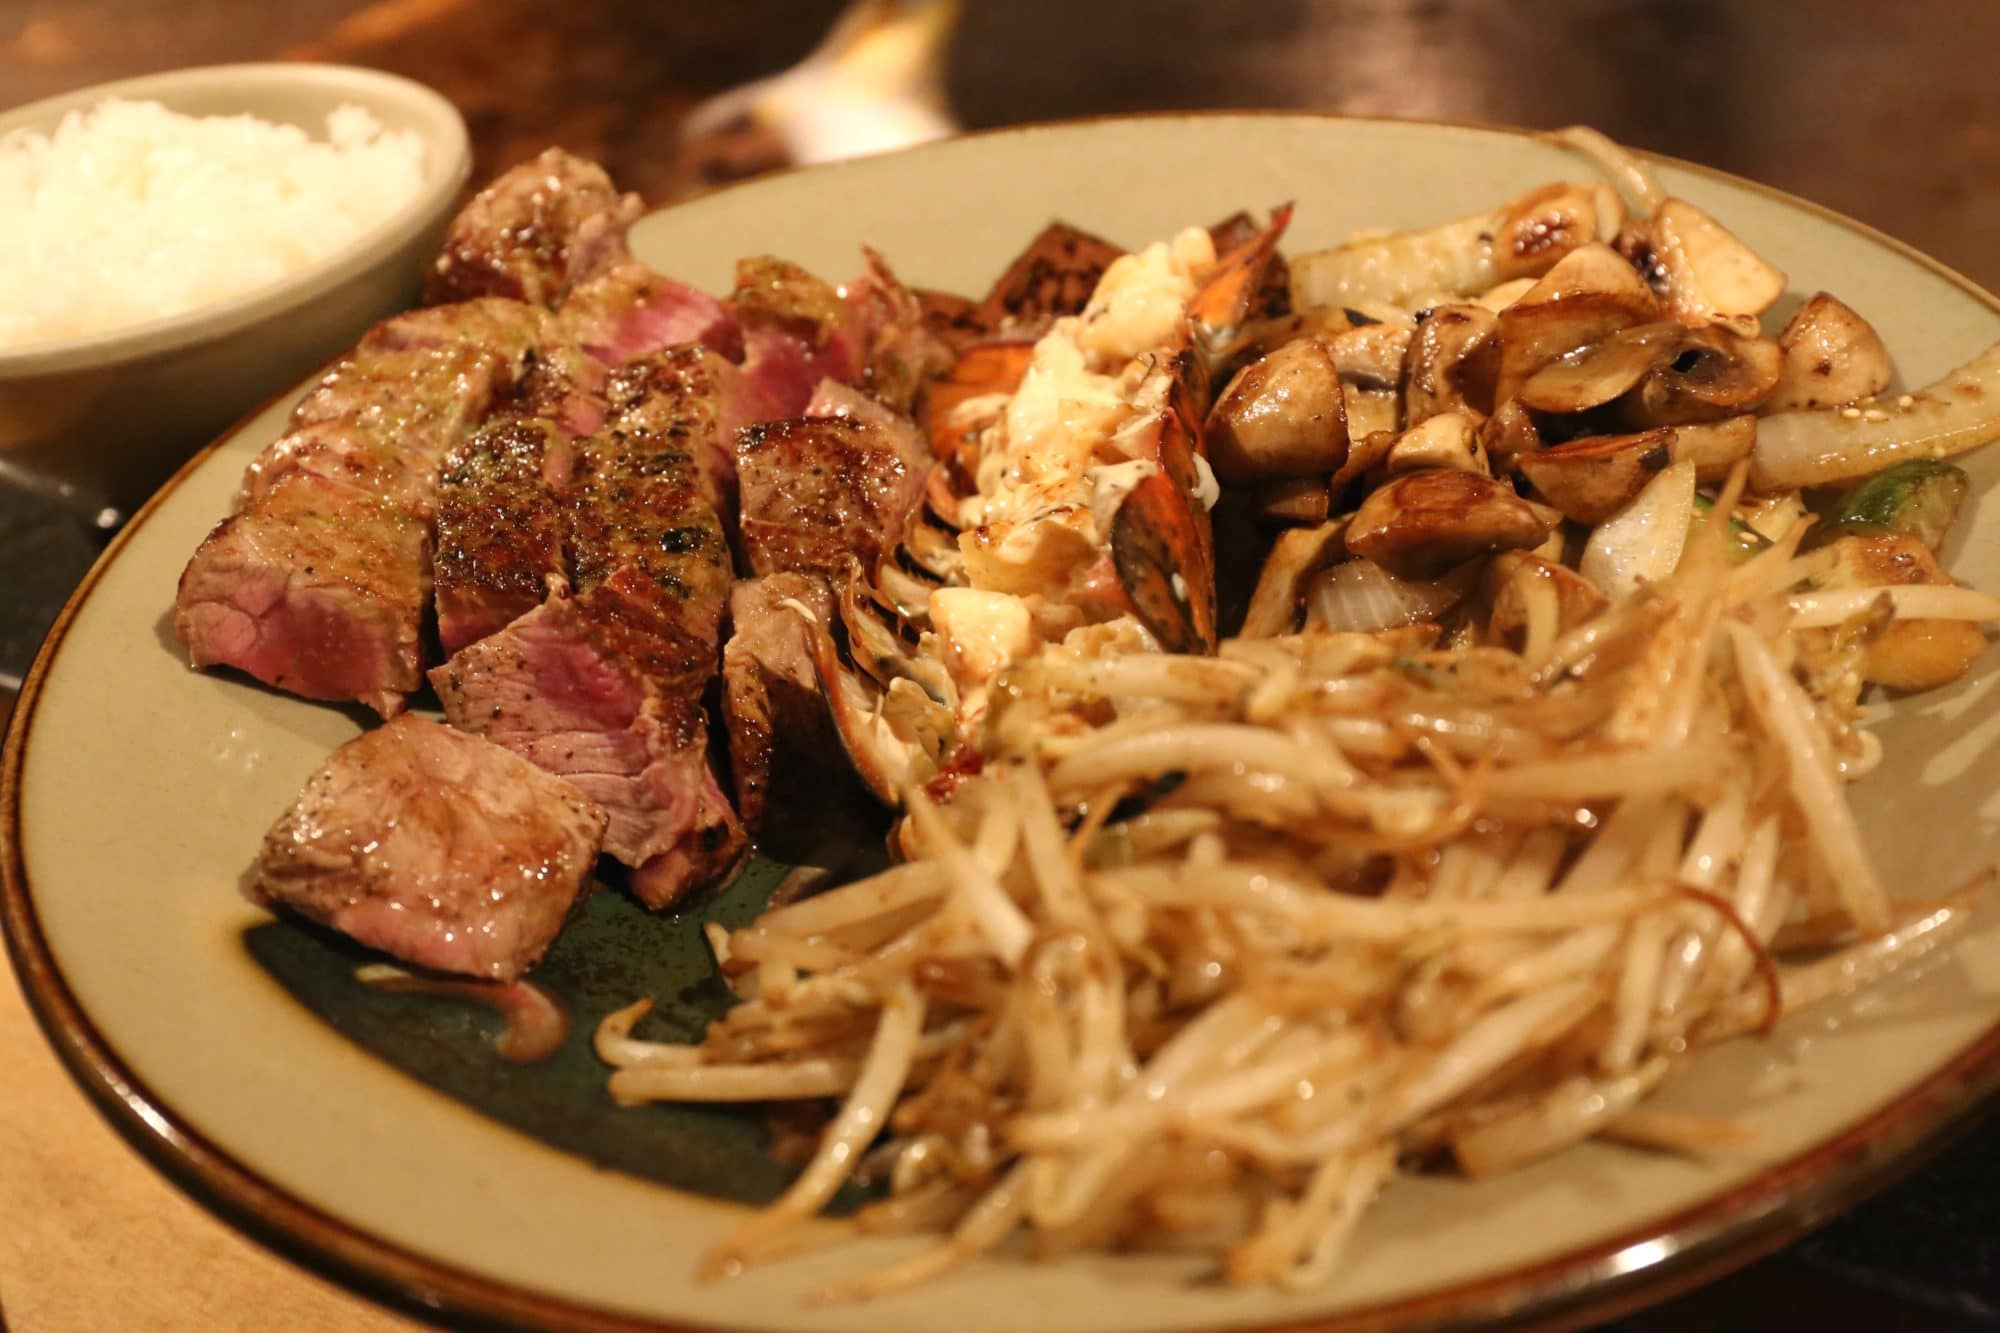 Chateaubriand steak with lobster tail,hibachi grilled onion, zucchini & mushrooms at Benihana